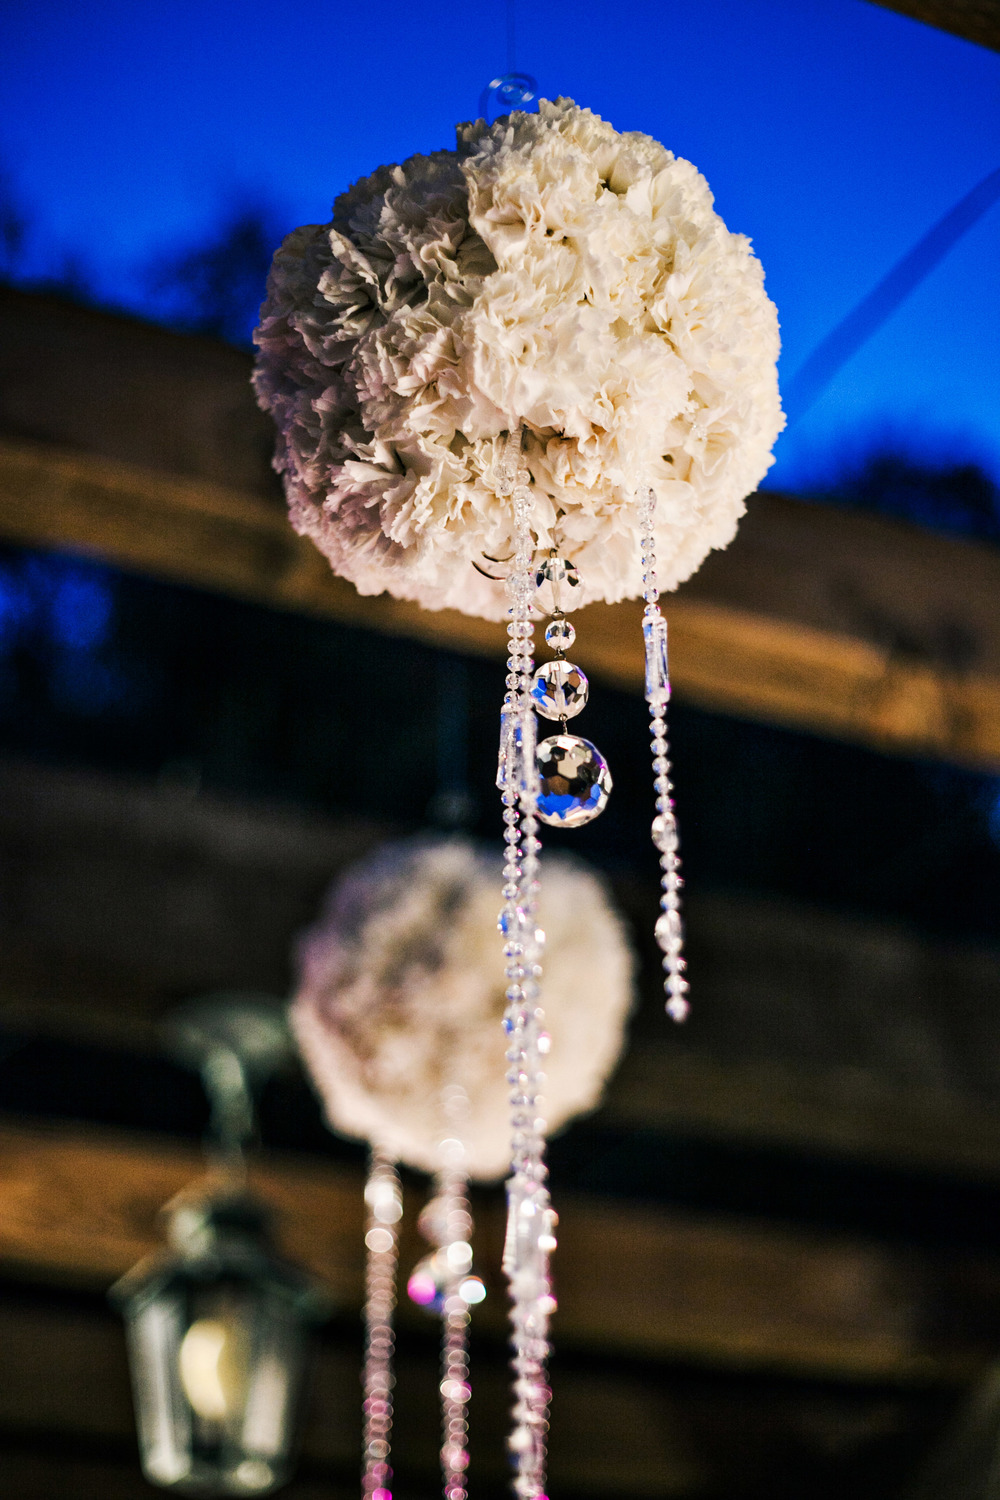 32. RS - flower pomeanders, hanging flowers with crystals, wedding bar flowers, white wedding flowers, modern romantic wedding, summer wedding.jpg